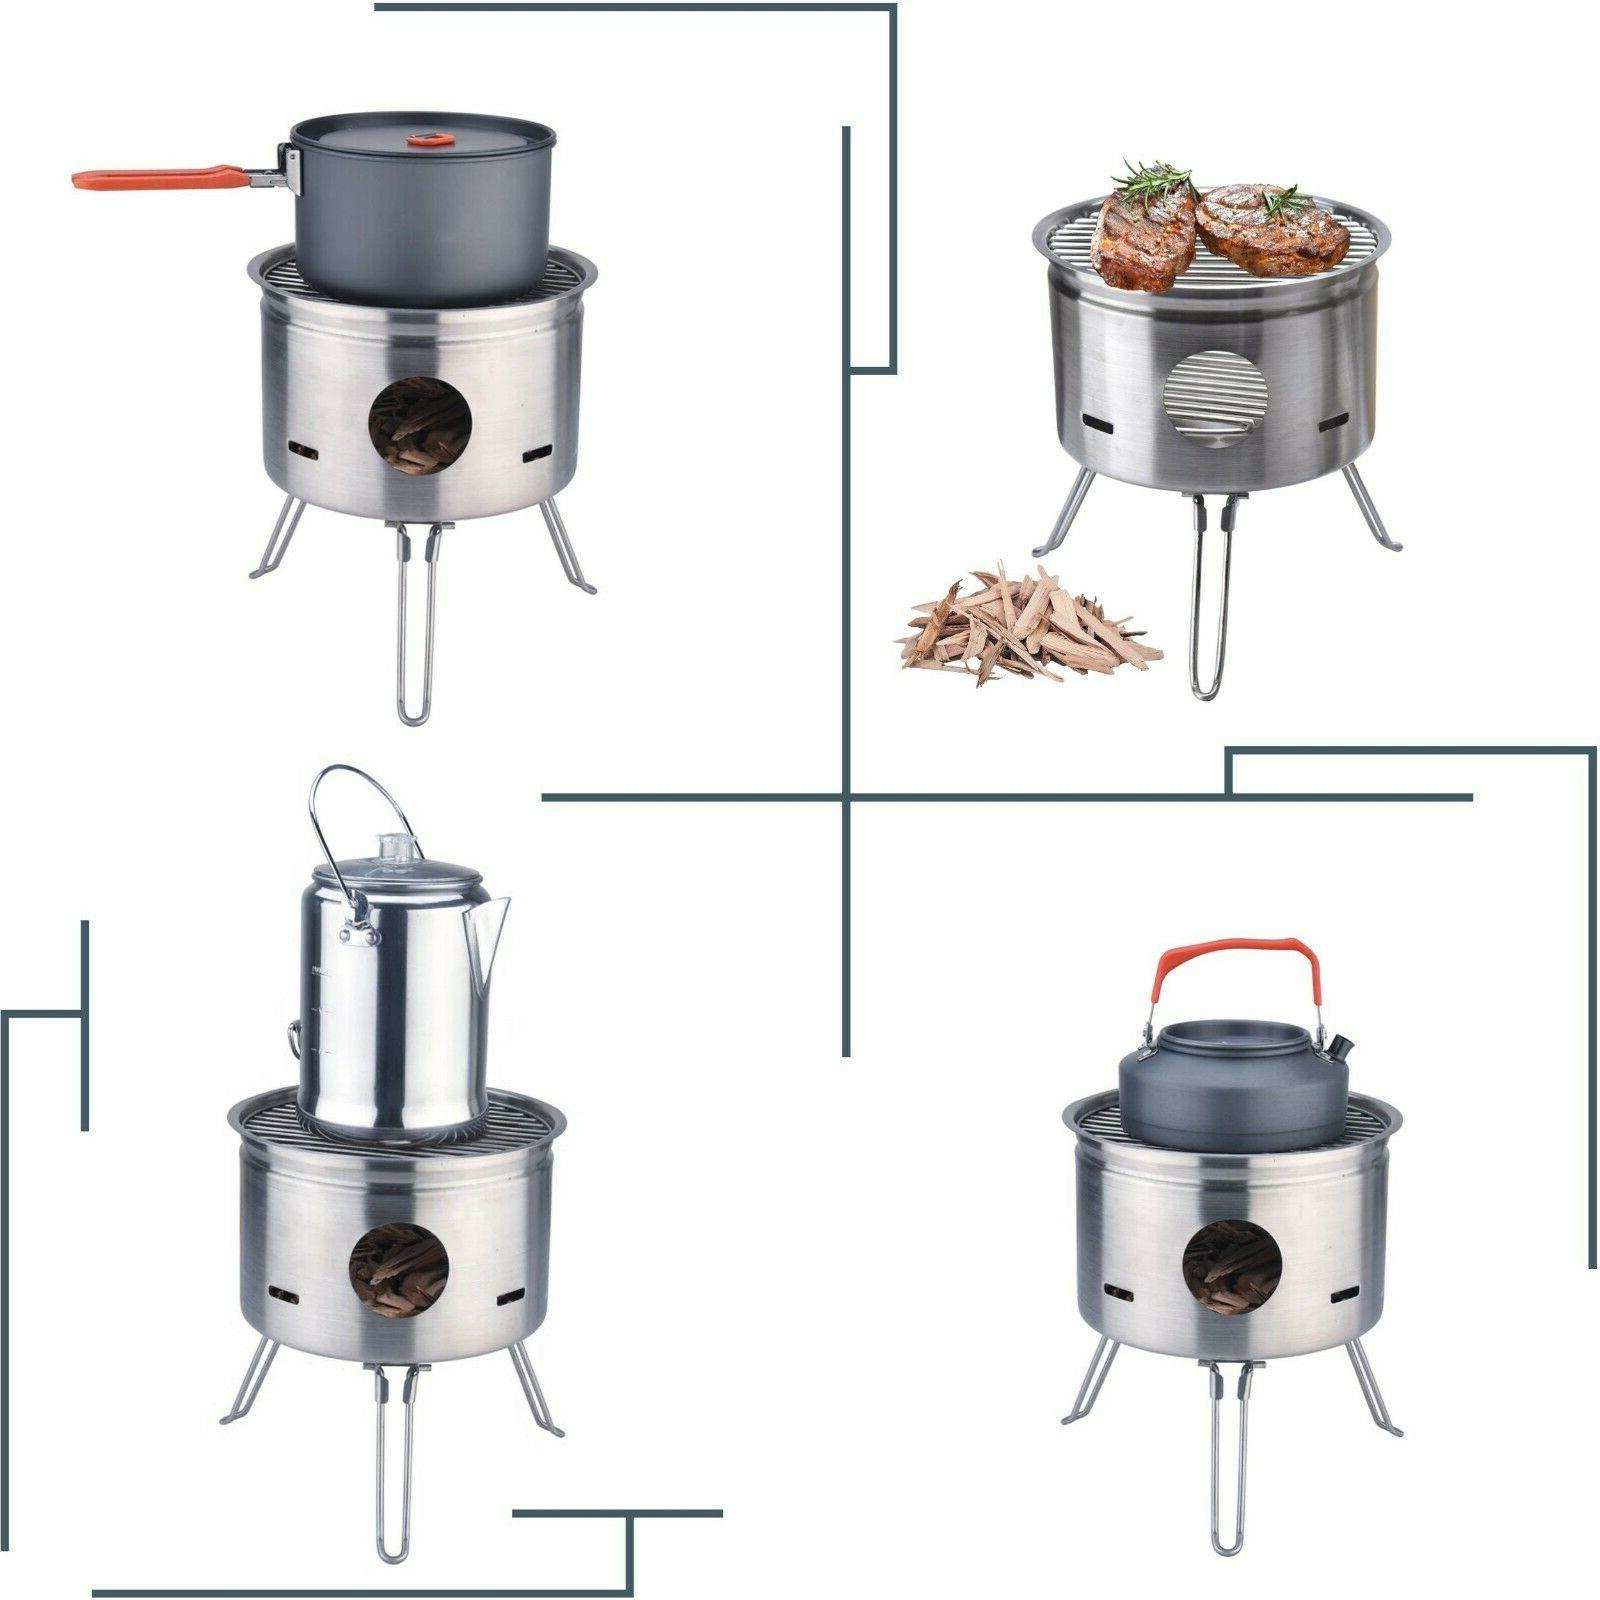 Outdoor Camping Wood Stove BBQ Portable